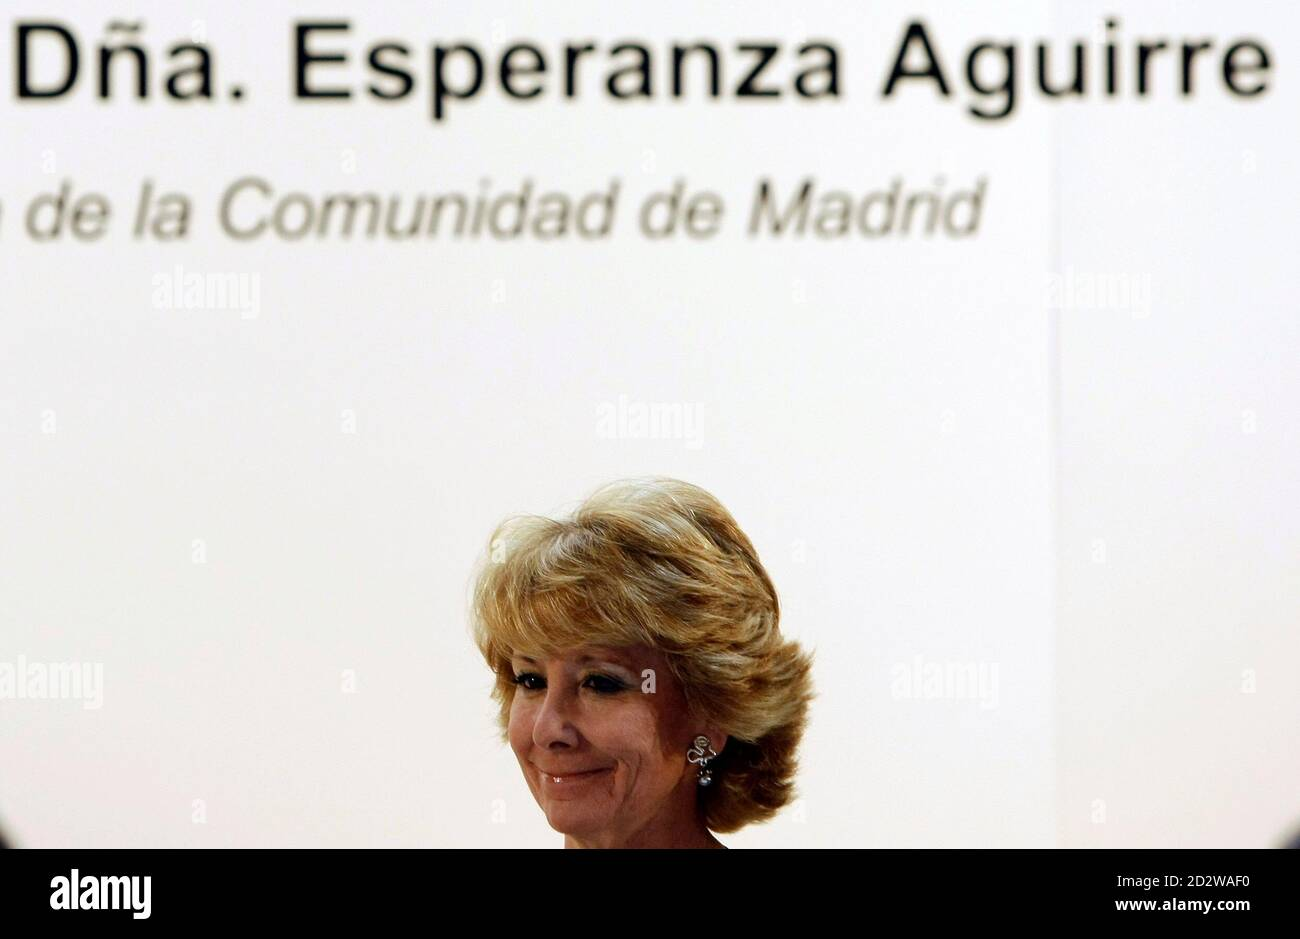 Esperanza Aguirre (L), the president of the Madrid Regional Government and one of the main Popular Party (PP) leaders, prepares to speak at a political luncheon in Madrid April 7, 2008. REUTERS/Sergio Perez (SPAIN) Foto de stock